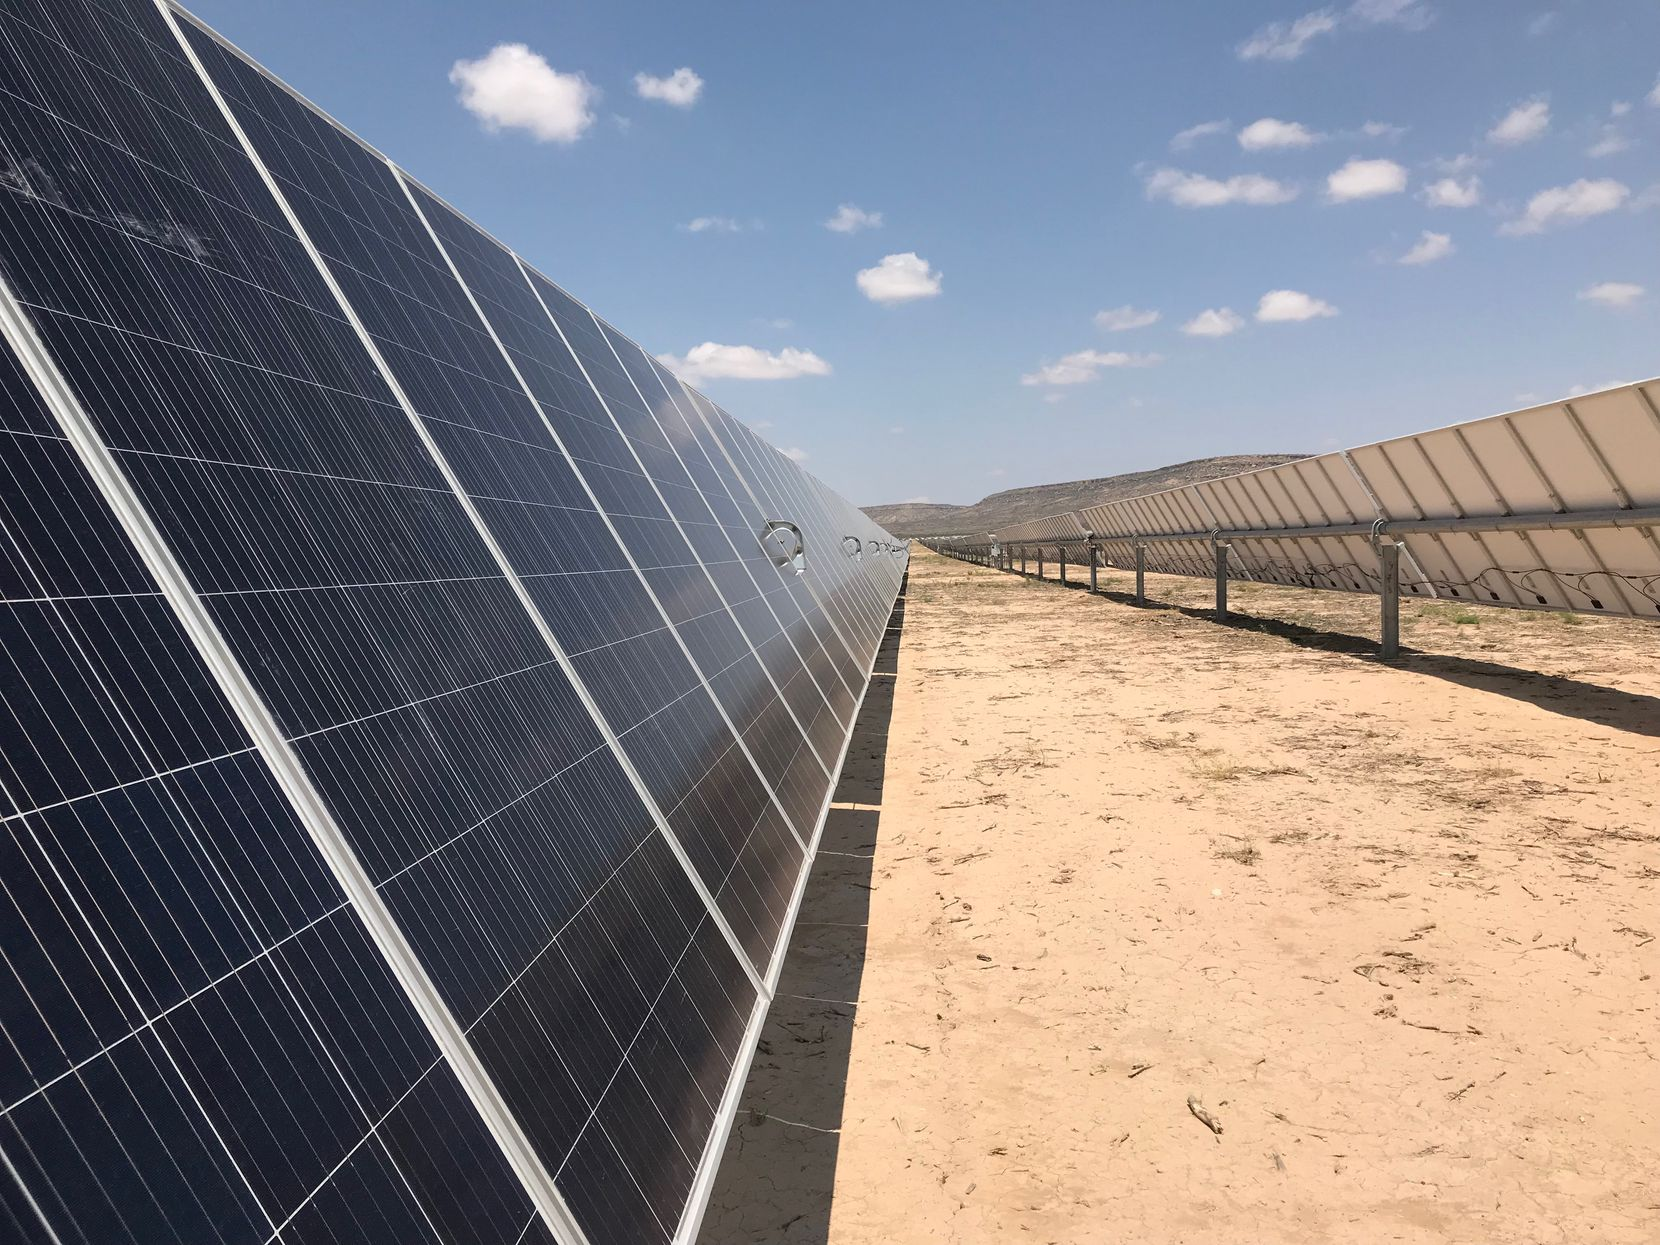 The Upton 2 Solar and Energy Storage Facility in Upton County, Texas, accounts for just 0.5% of Vistra's current generation. The company projects that solar and storage will generate 18% of its power in a decade.